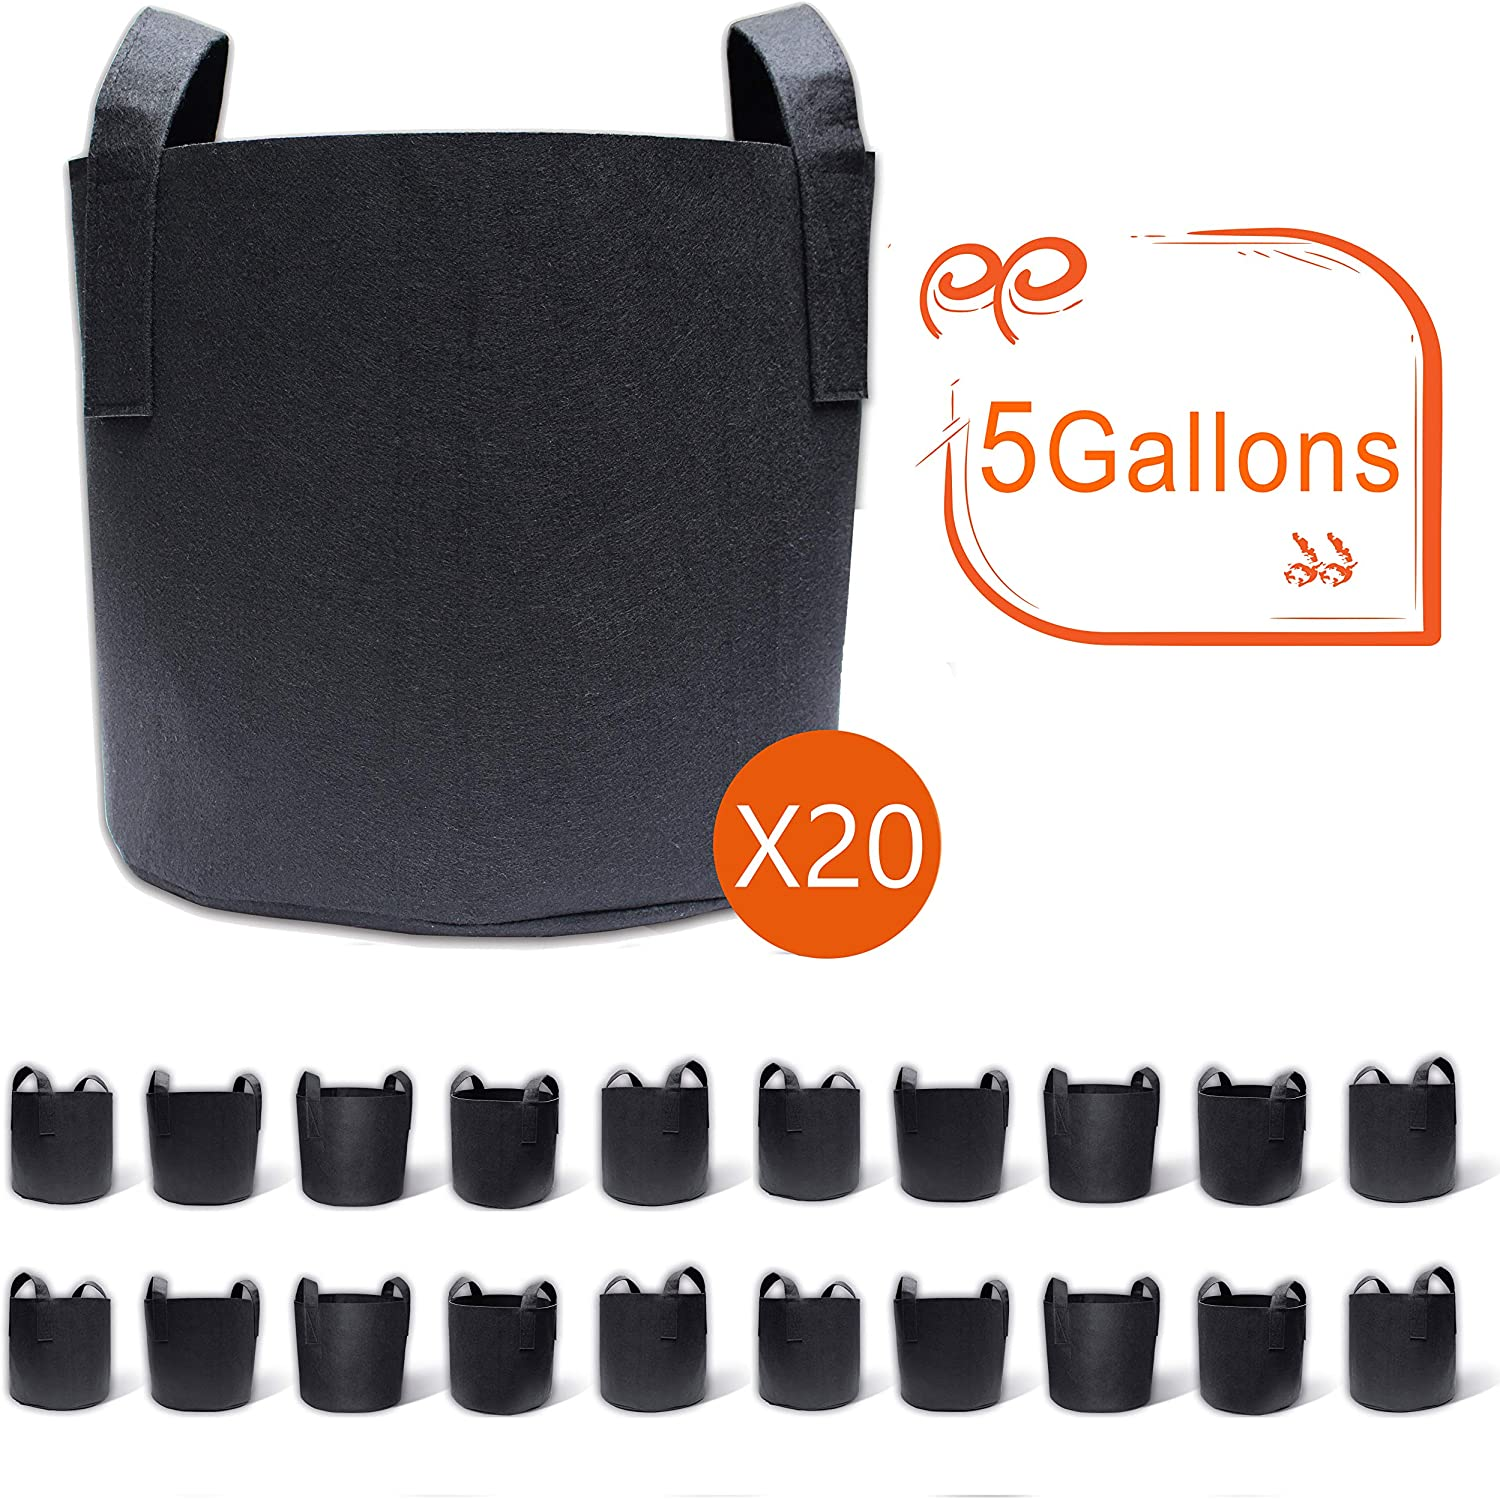 Gardzen 20-Pack 5 Gallon Grow Bags, Aeration Fabric Pots with Handles